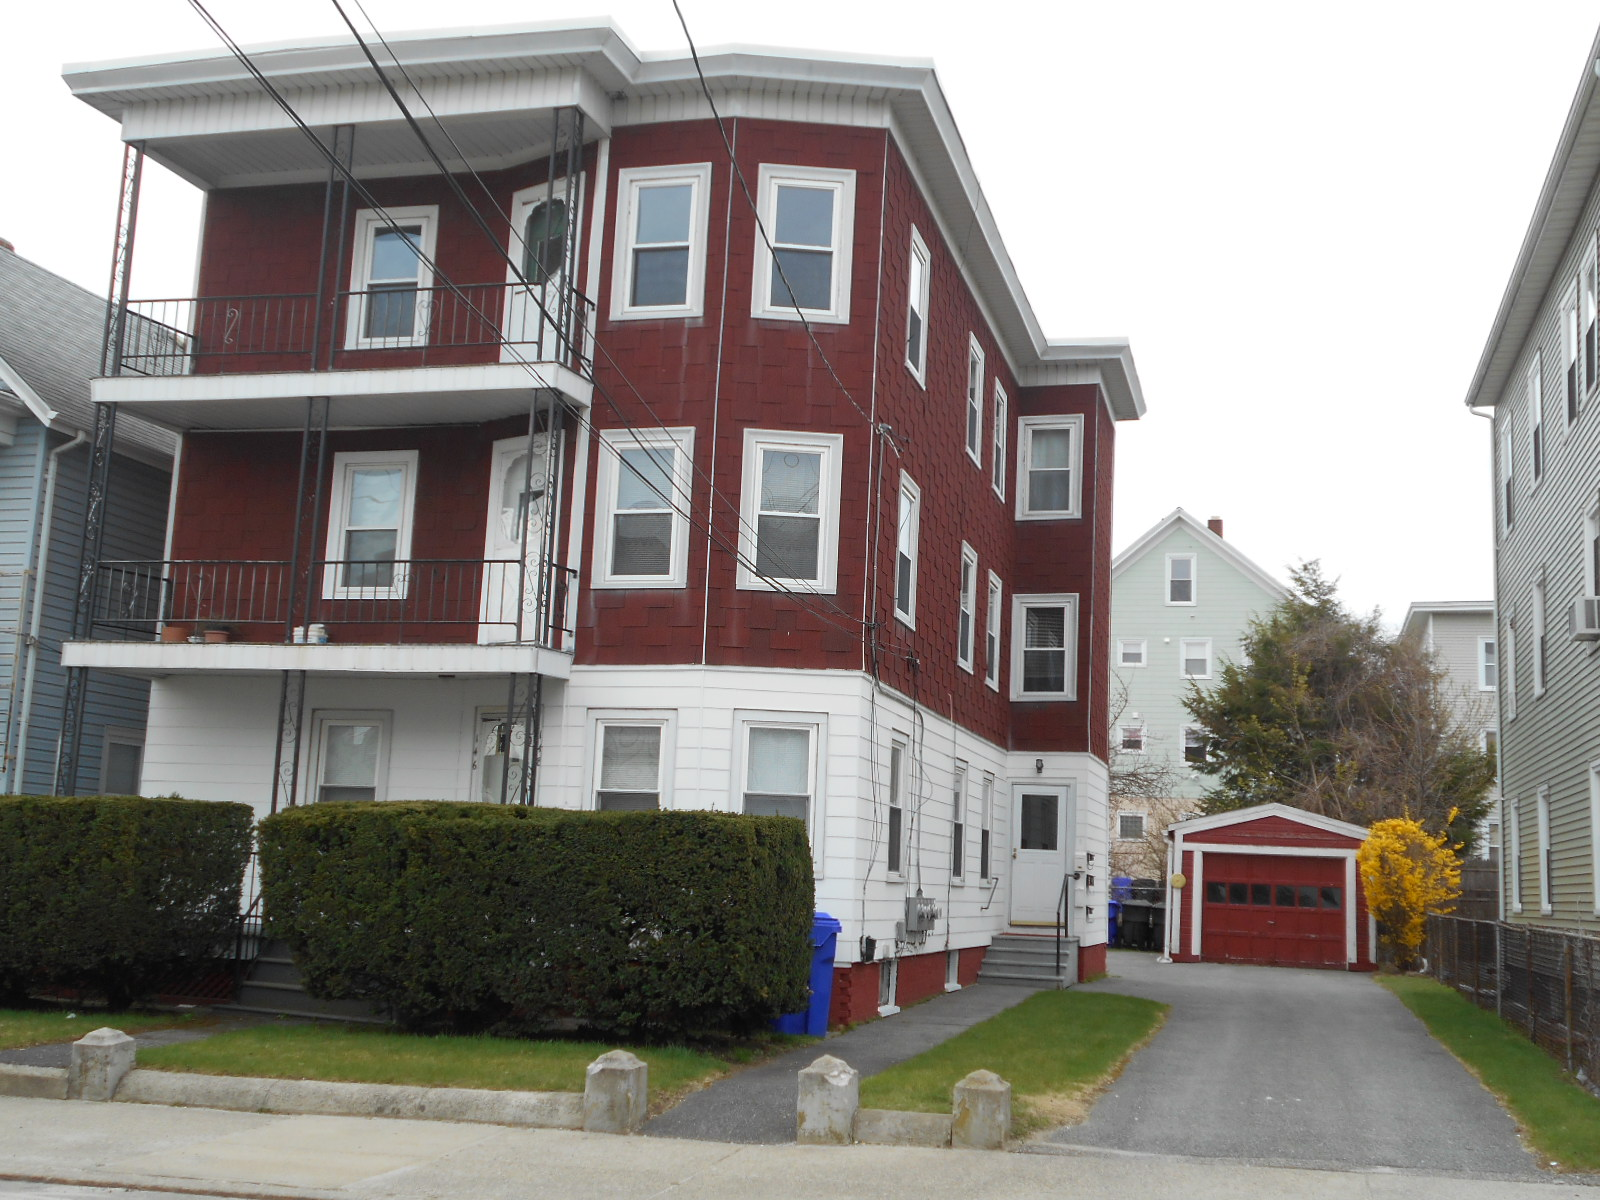 Sold a Multi-Family Home in Central Falls RI